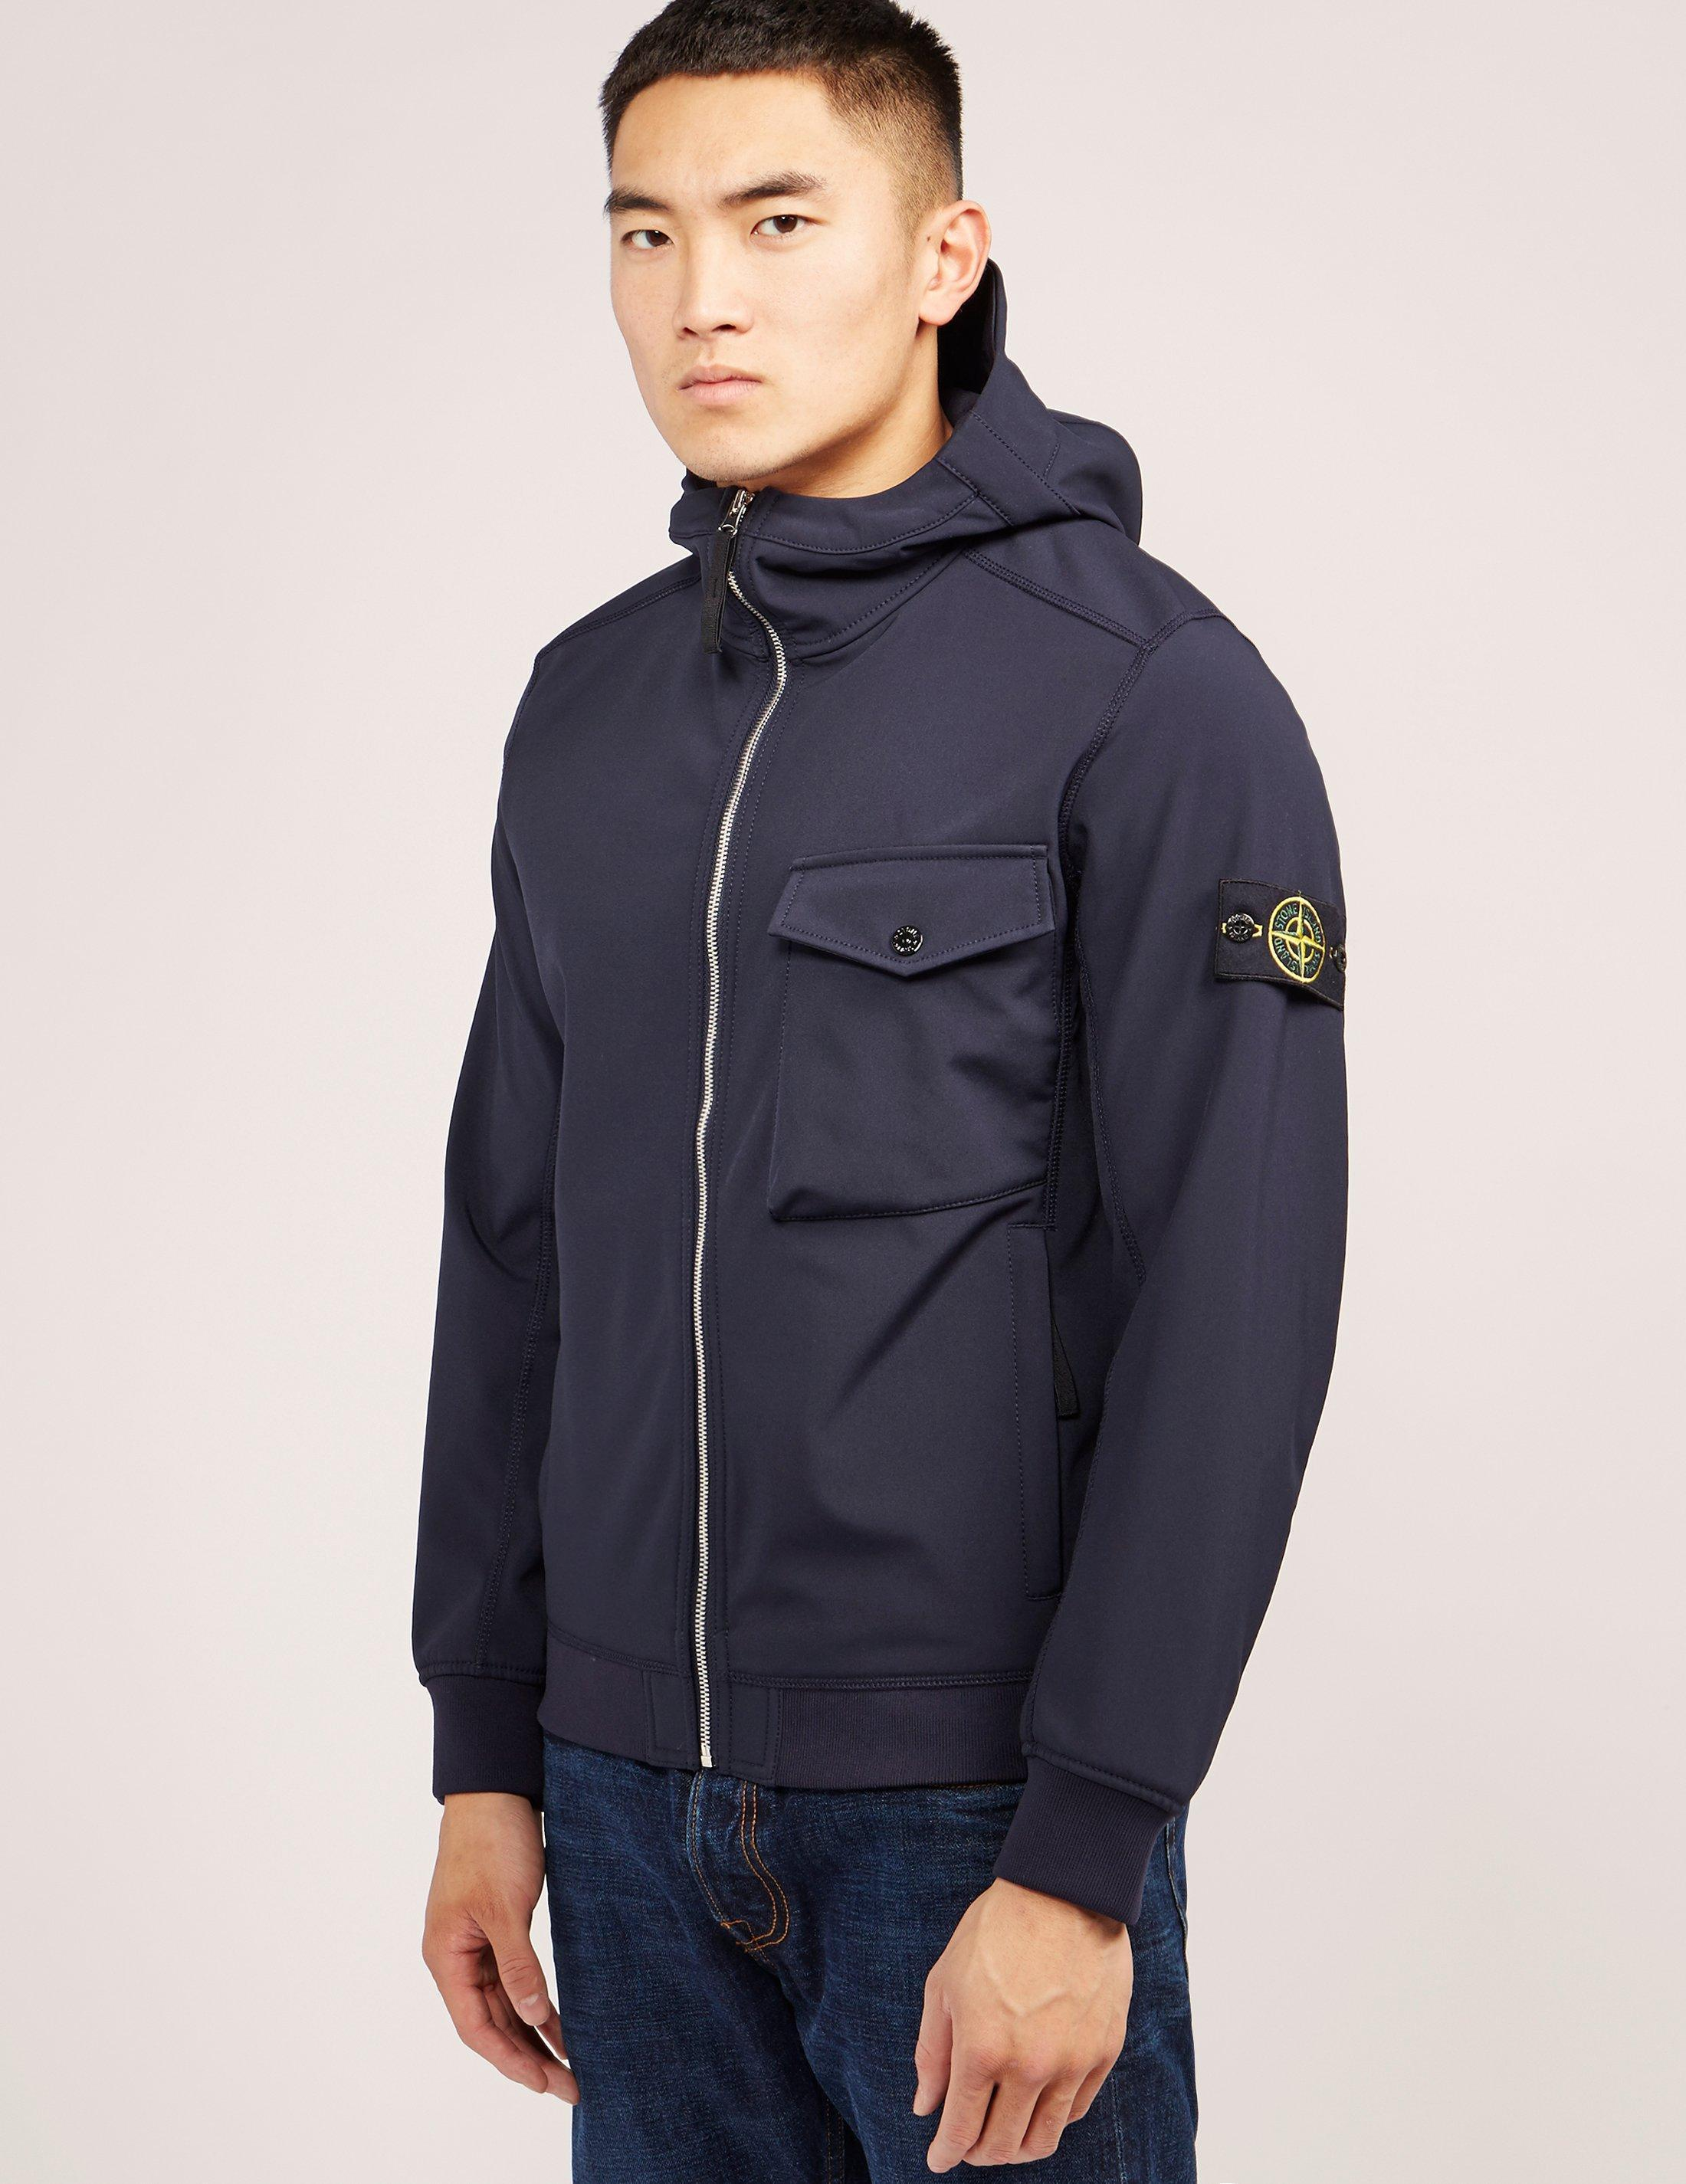 stone island shell hooded jacket in blue for men lyst. Black Bedroom Furniture Sets. Home Design Ideas